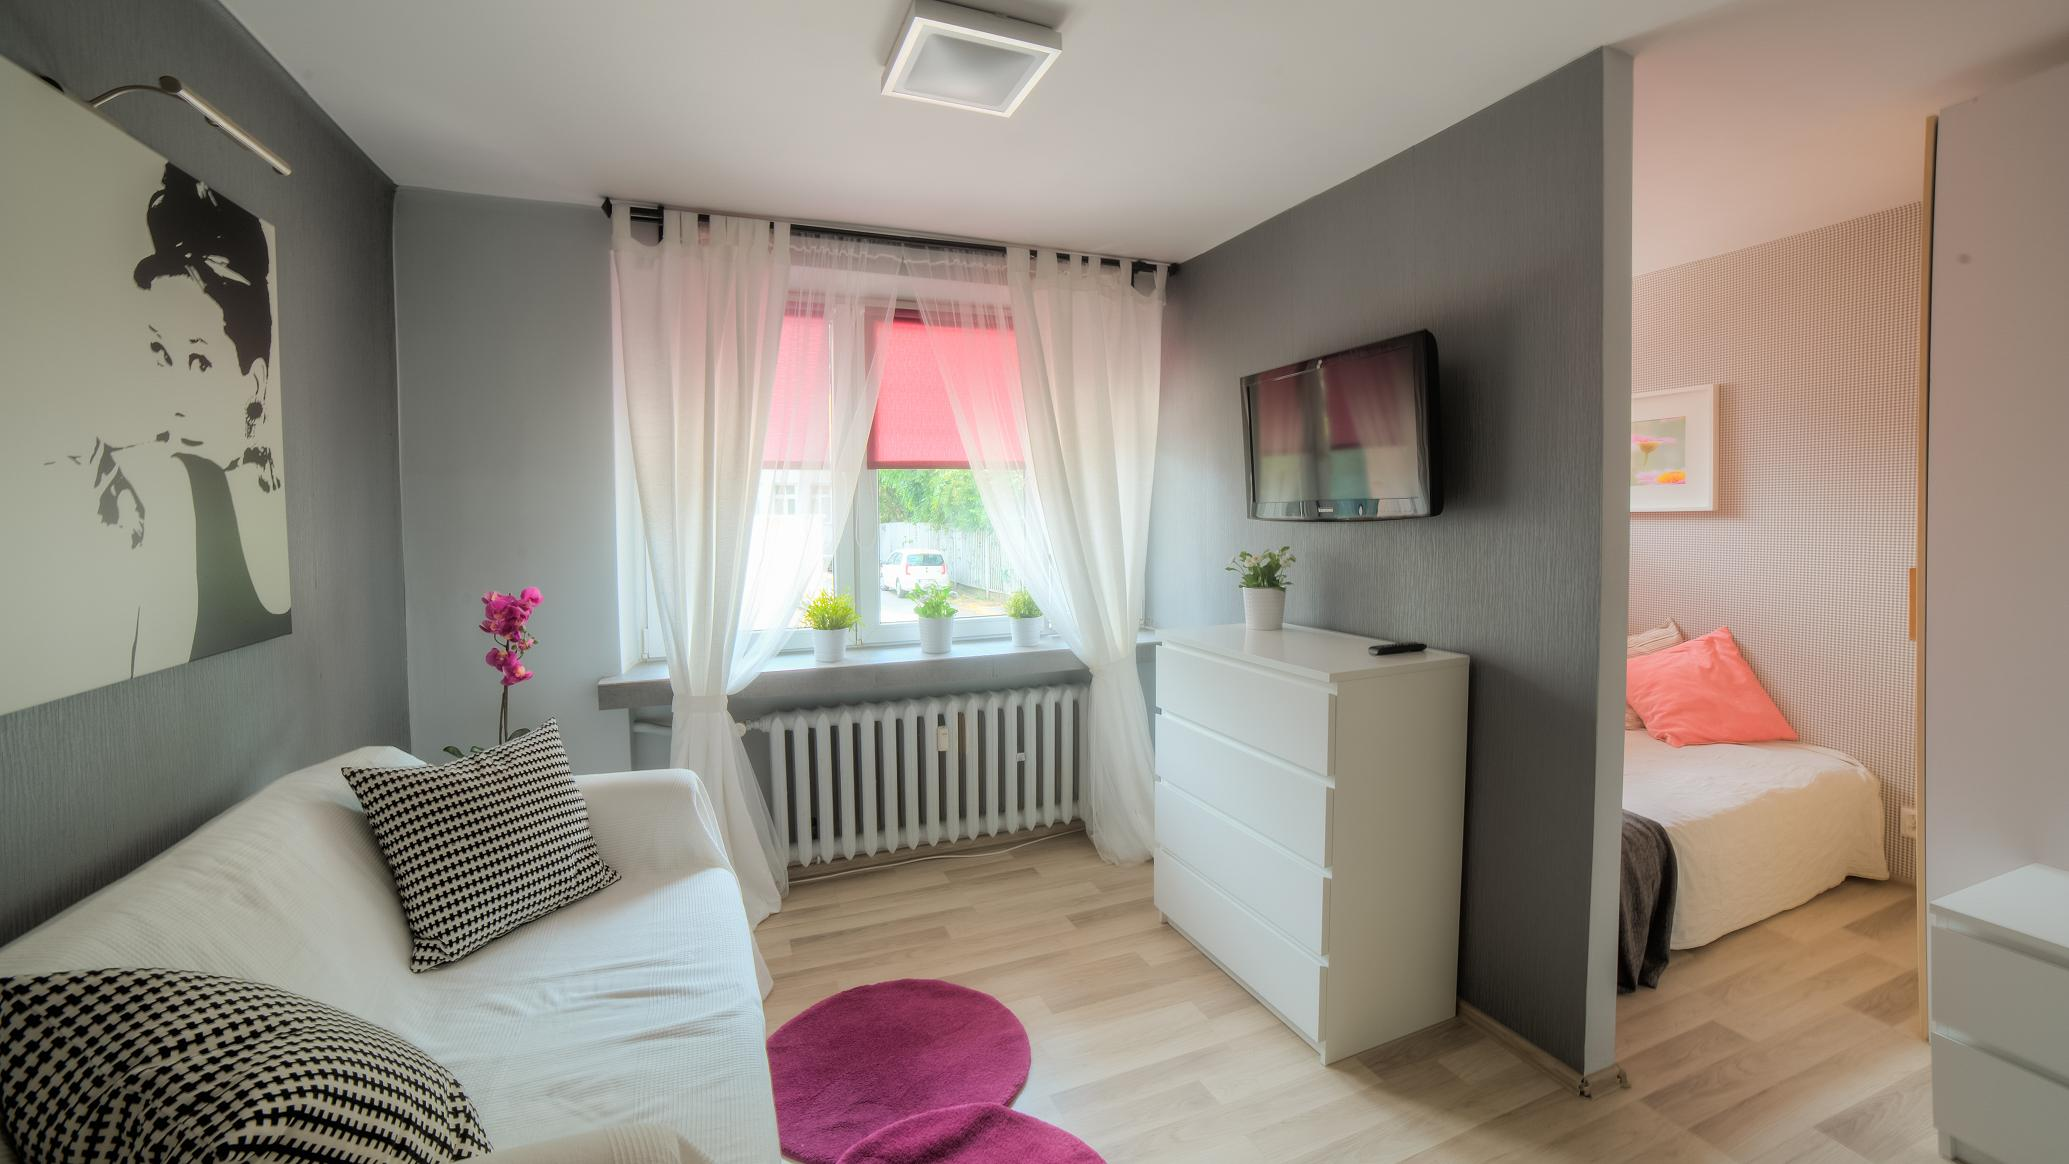 Living Room Bedroom In Living Room cracow old town helclow str 1 bedroom livingroom 2400 pln total livingroom